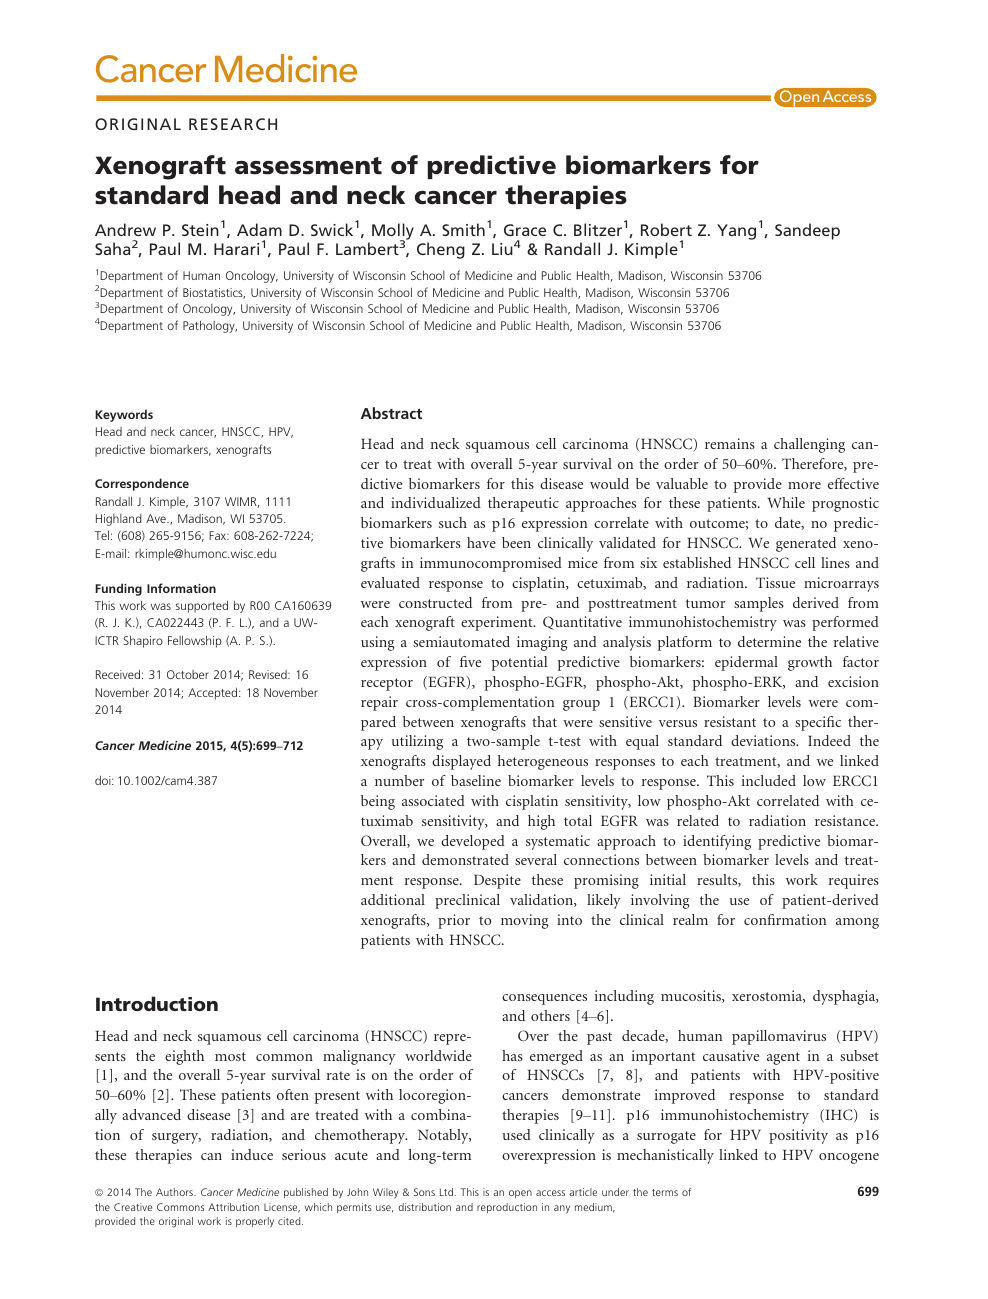 Xenograft assessment of predictive biomarkers for standard head and